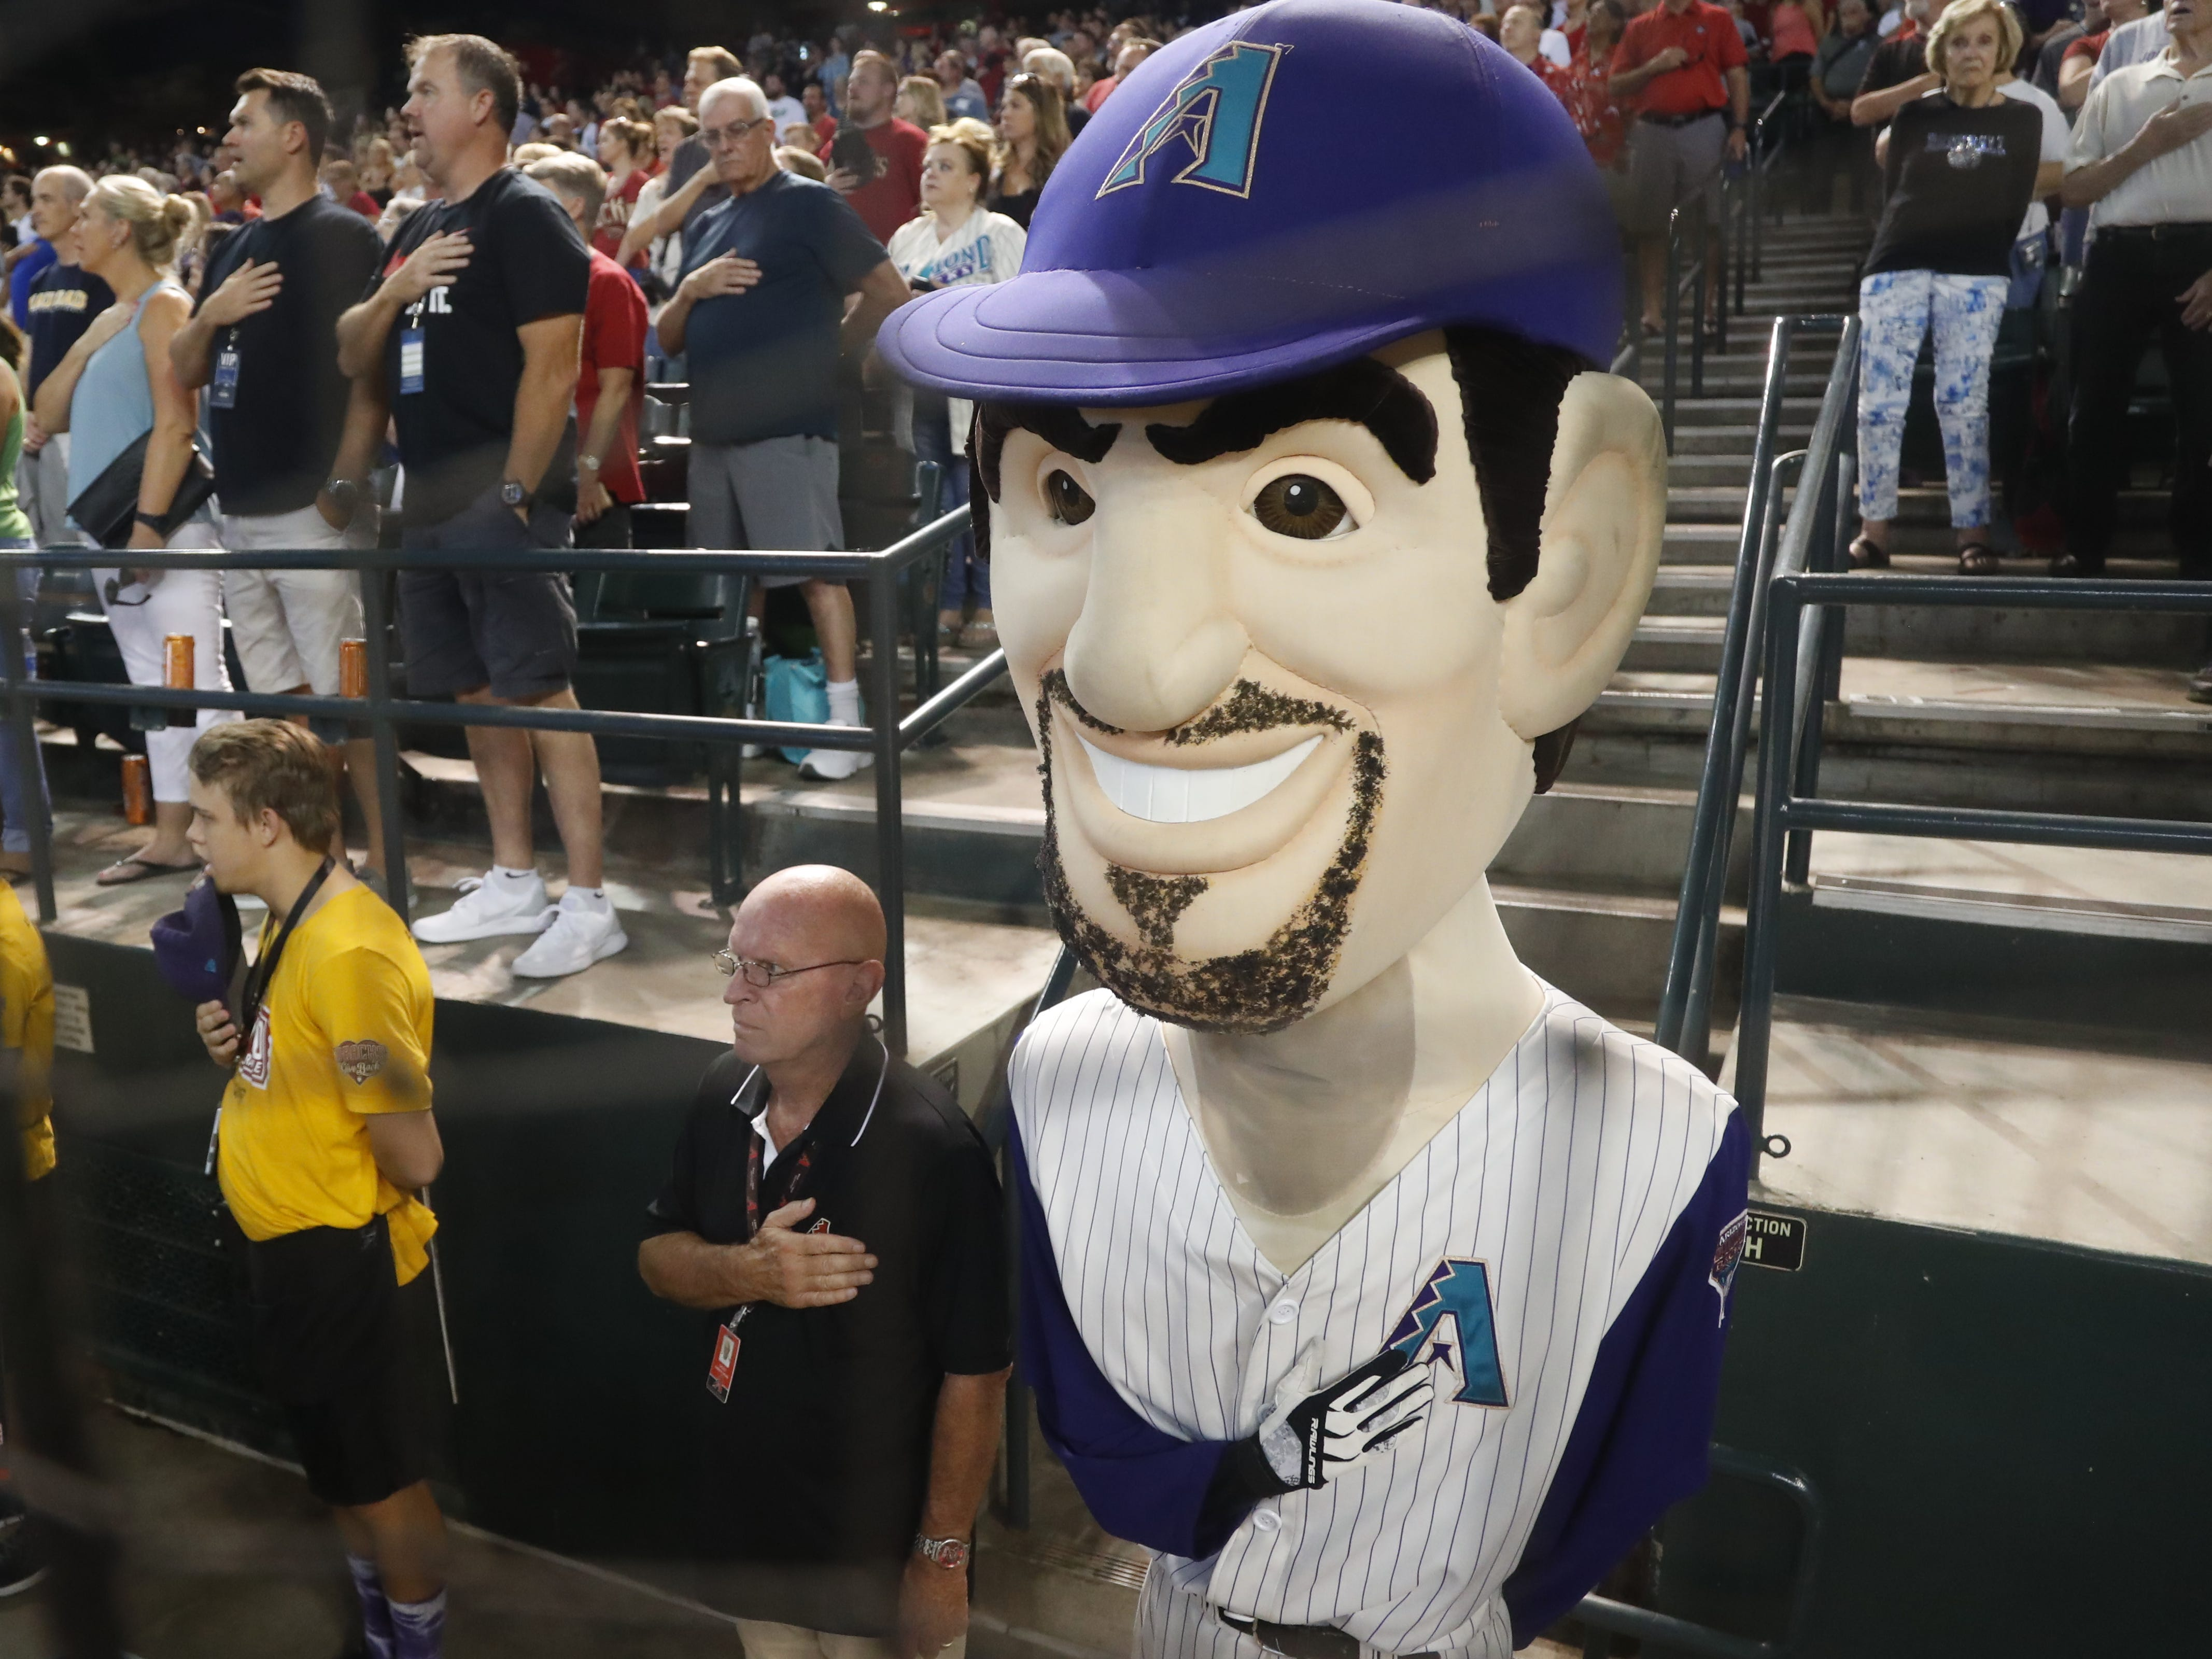 A Luis Gonzalez mascot holds his hand over his heart prior to the Generations Diamondbacks Alumni game at Chase Field in Phoenix, Ariz. on Aug. 4, 2018.